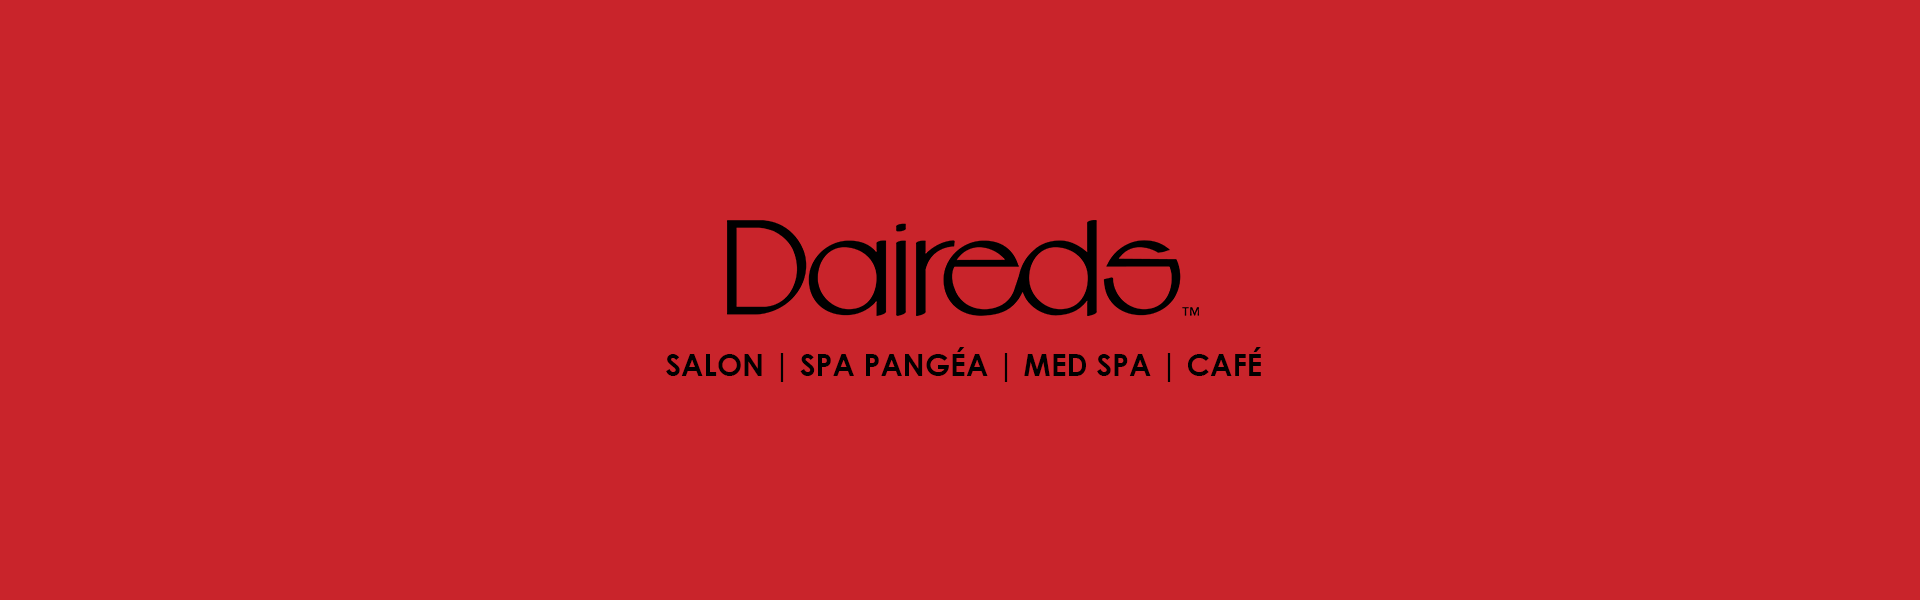 1acf07cf3522e Salon, Spa, and Beauty Treatments Near Dallas, TX | Daired's